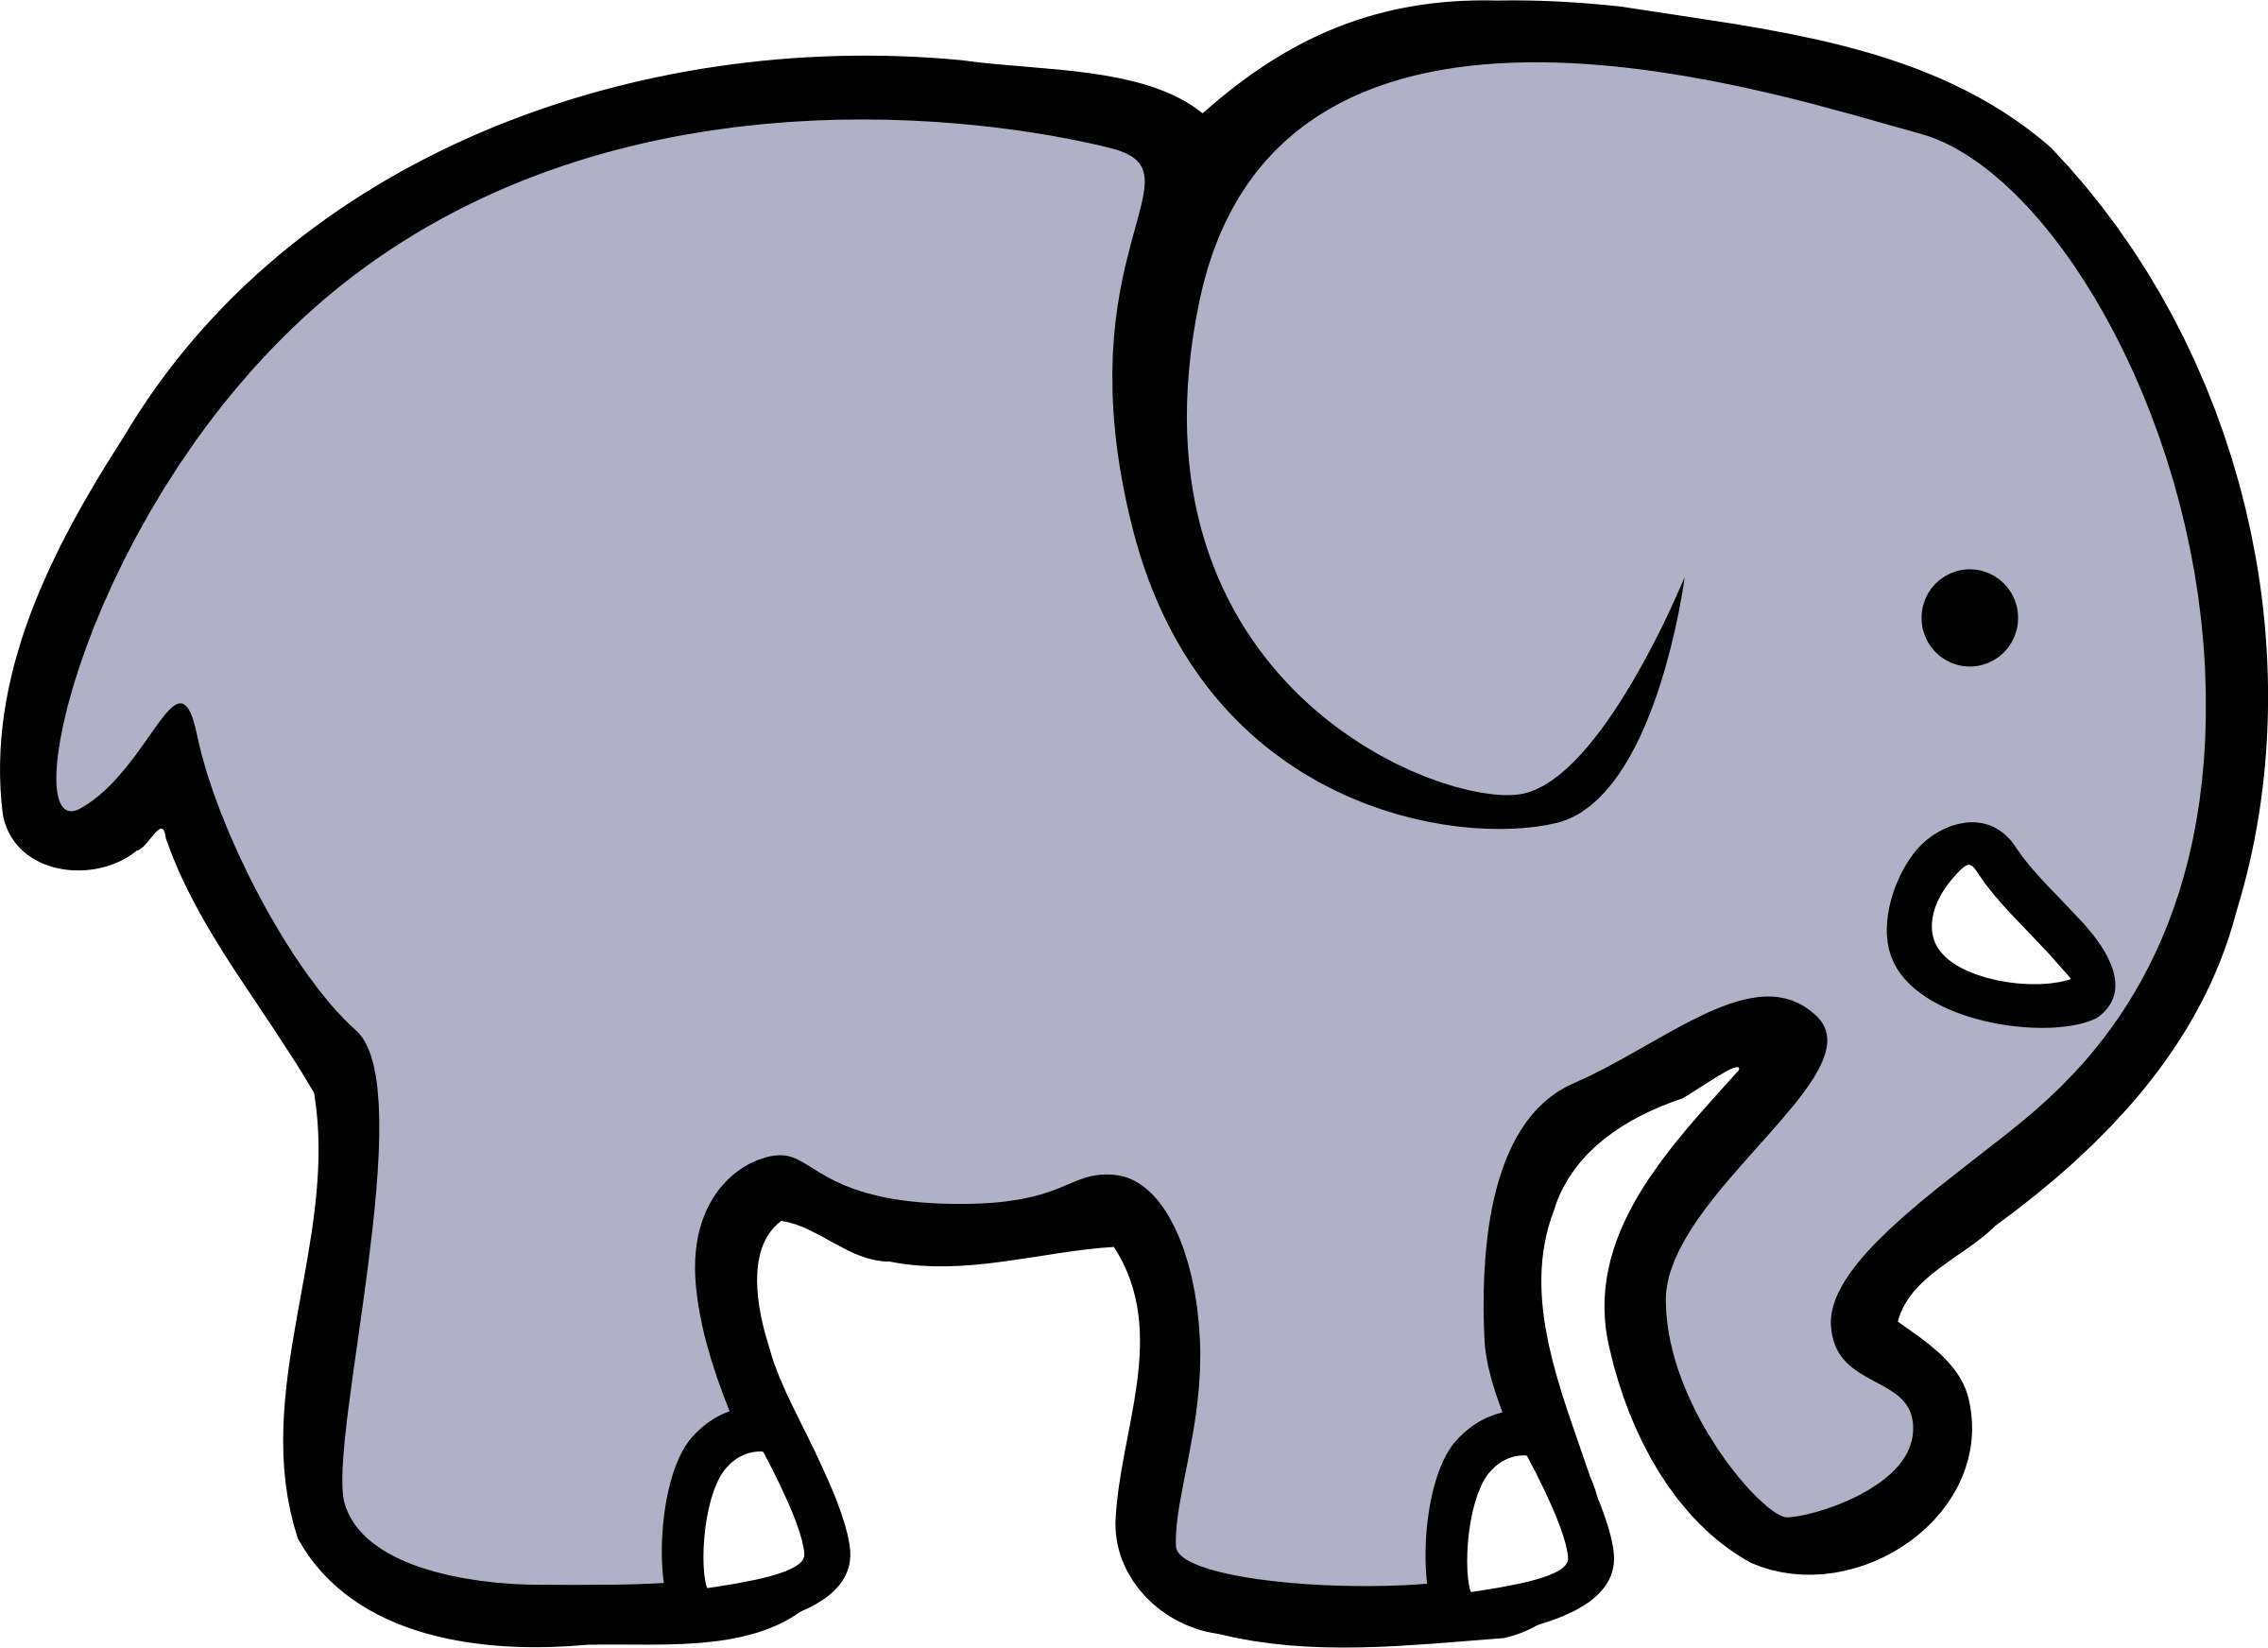 D cartoon by. Drawing elephants female elephant graphic freeuse library